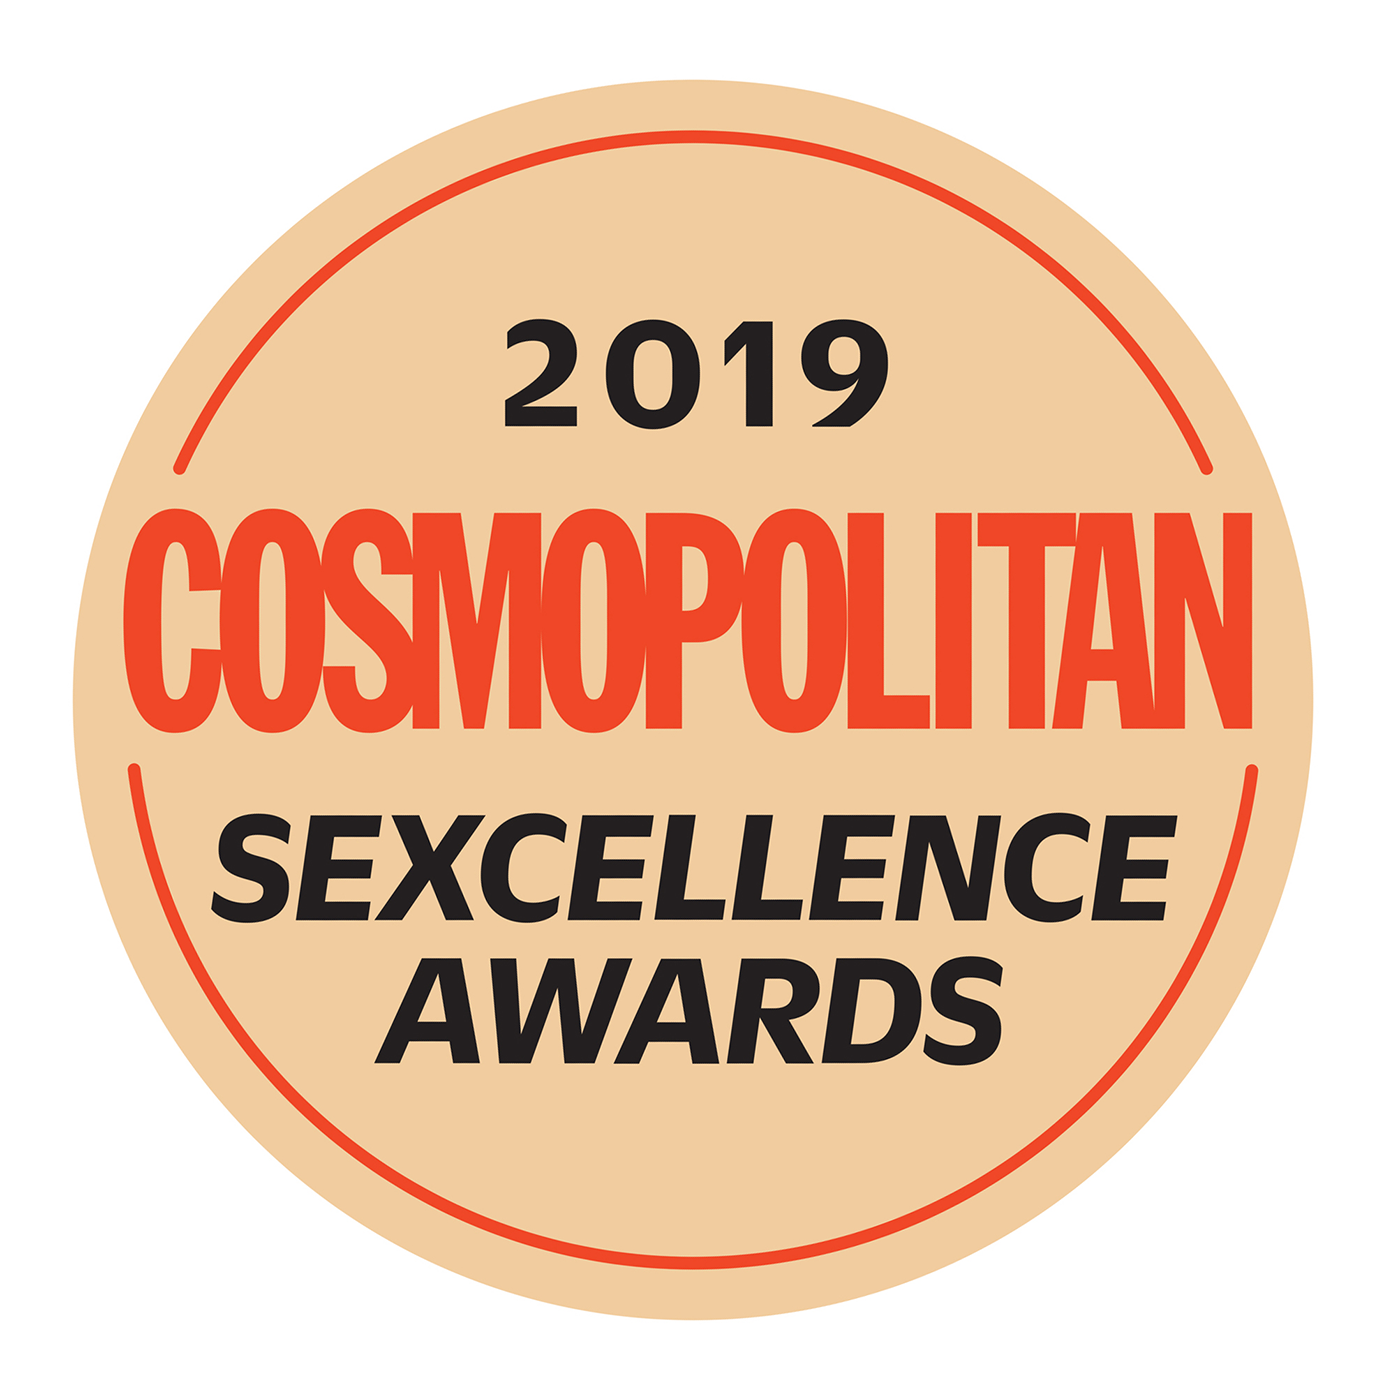 Introducing the Cosmo Stamp of Sexcellence